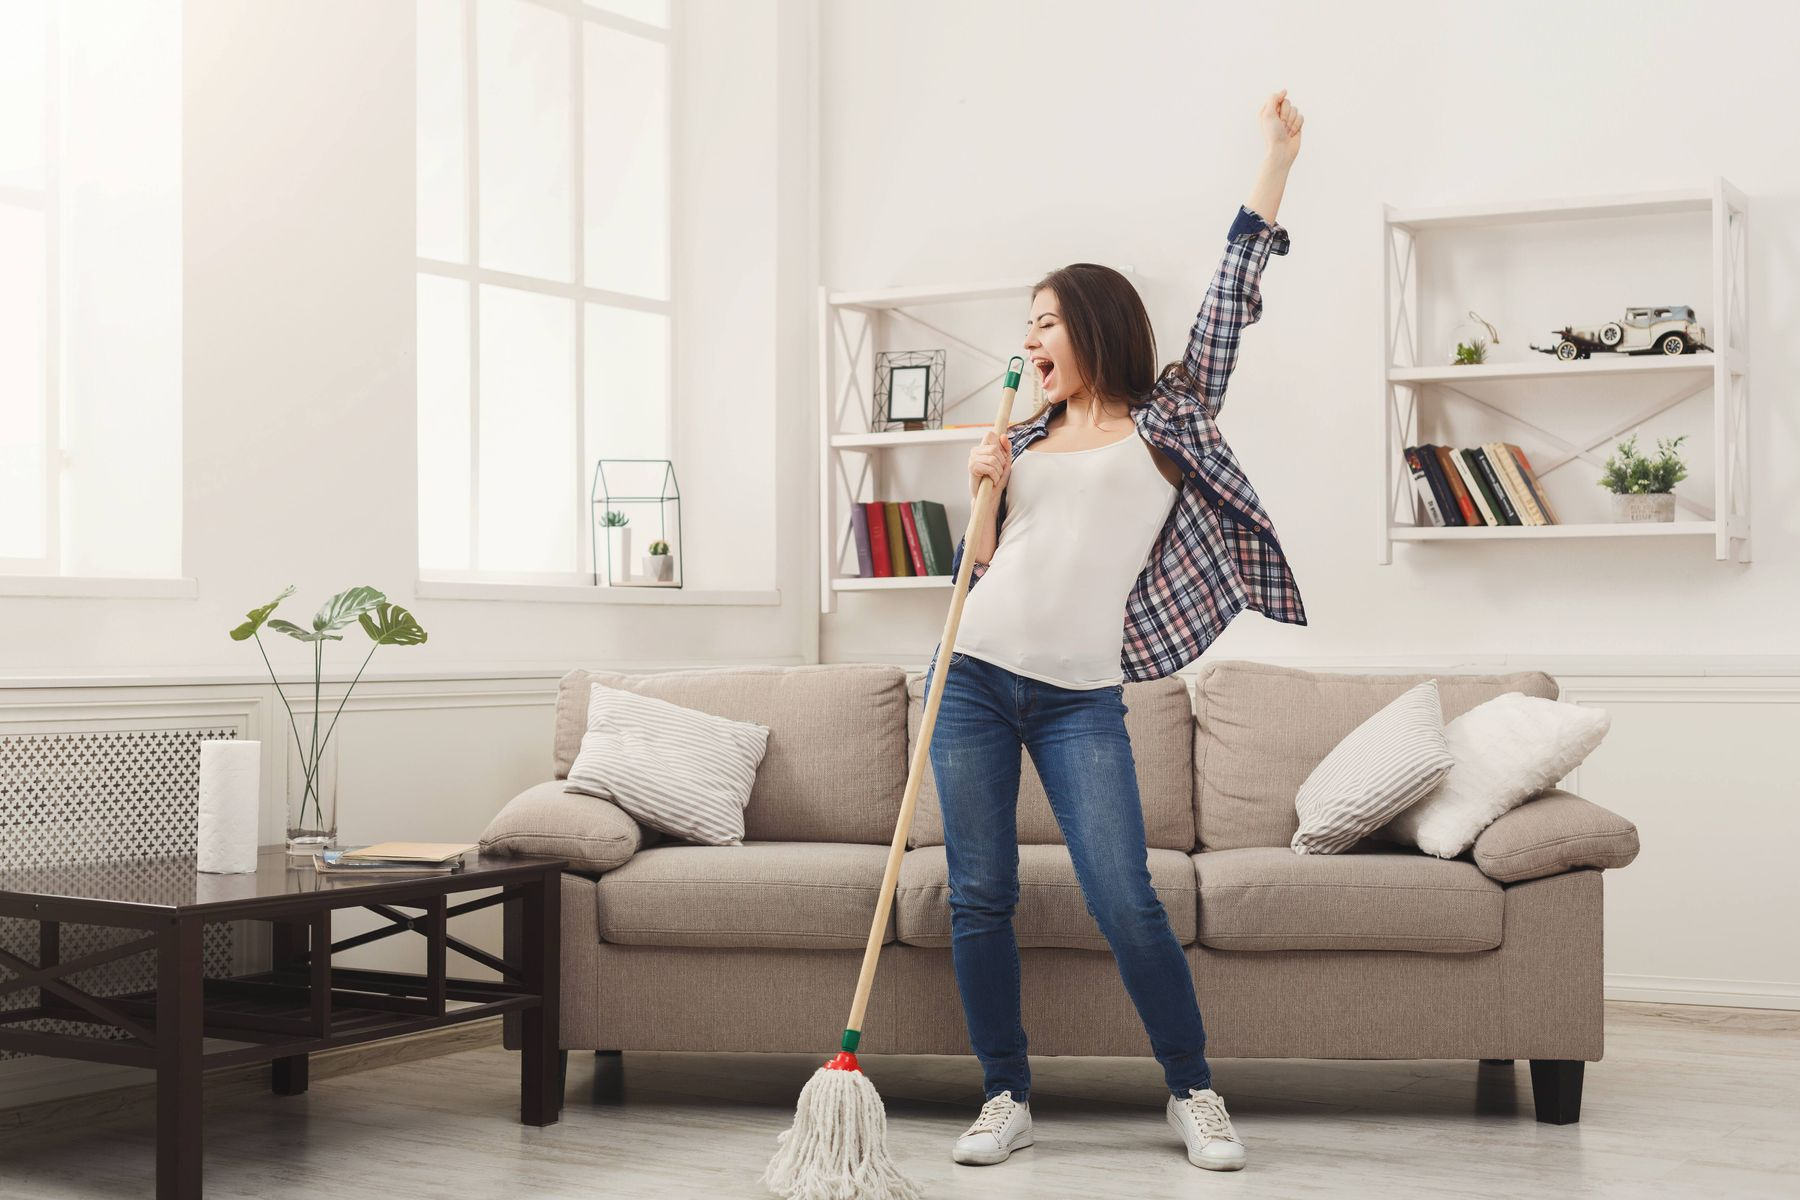 more-pollution-more-dust-in-the-house-heres-a-simple-cleaning-schedule-to-make-your-home-look-spick-and-span-all-the-time